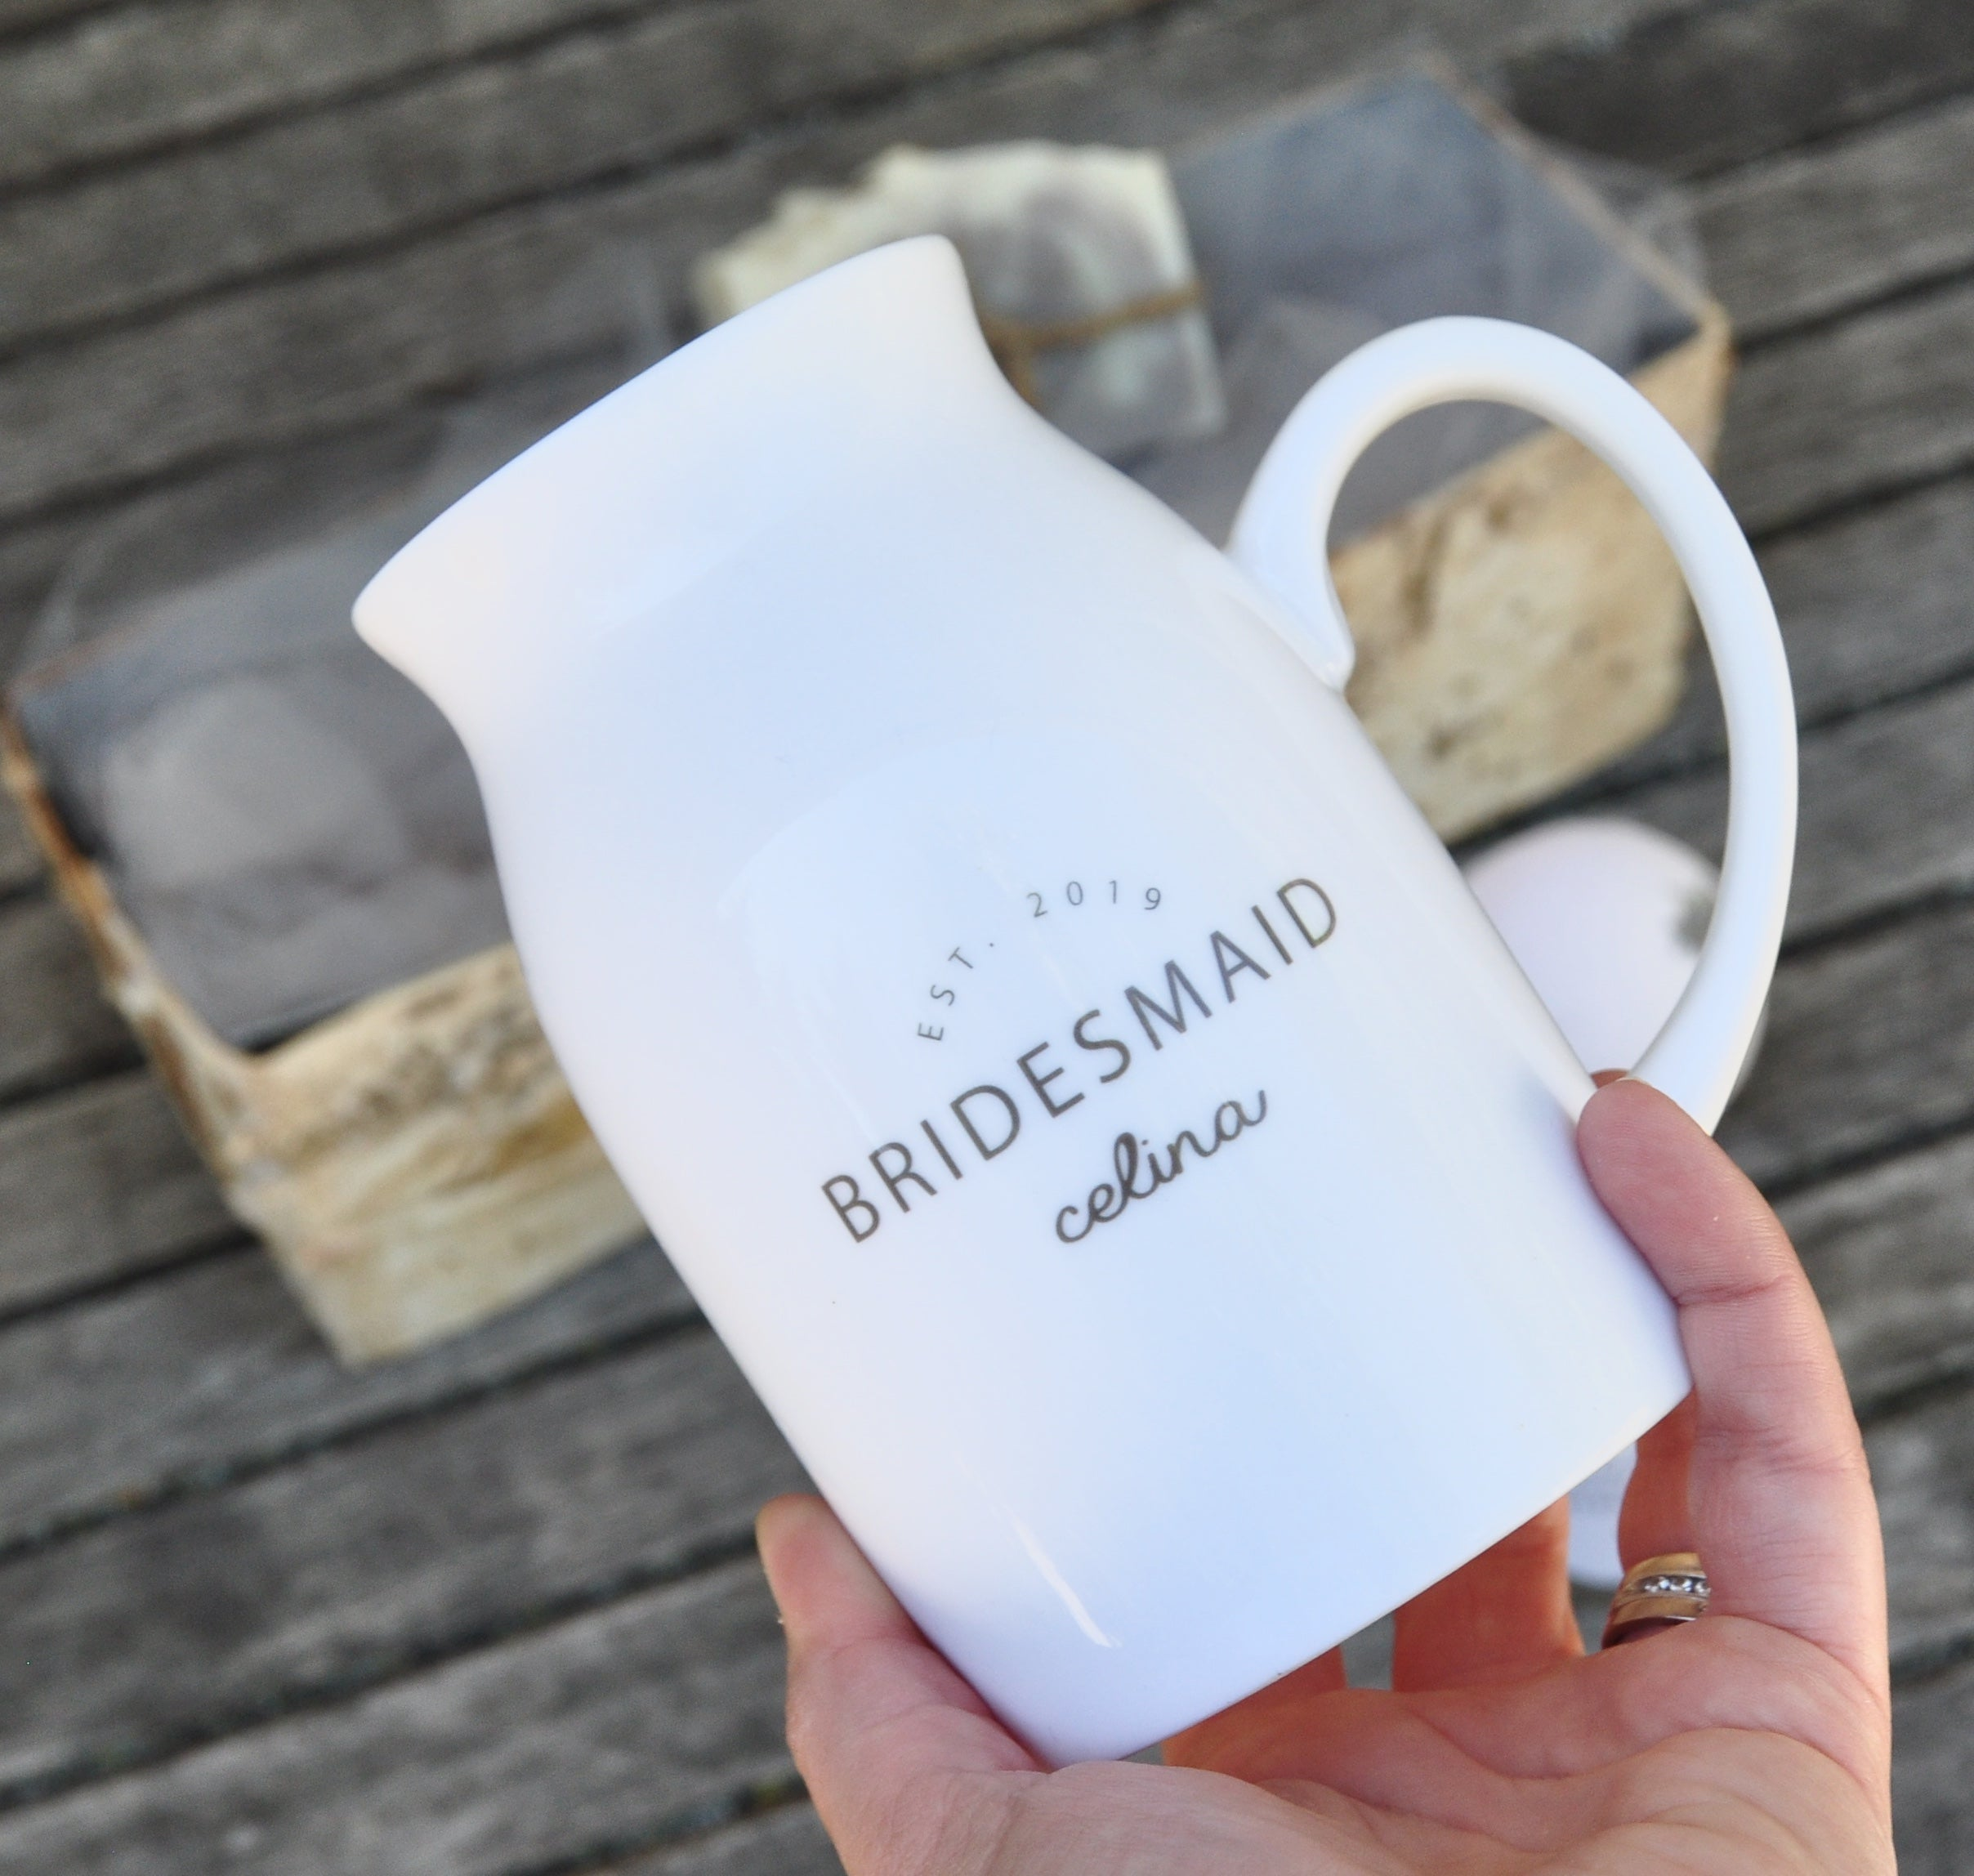 bridesmaid mug bridesmaid gift bridesmaid box bridesmaid bridal party gifts bridal party gift bridal party best bridesmaid gift be my maid of honor